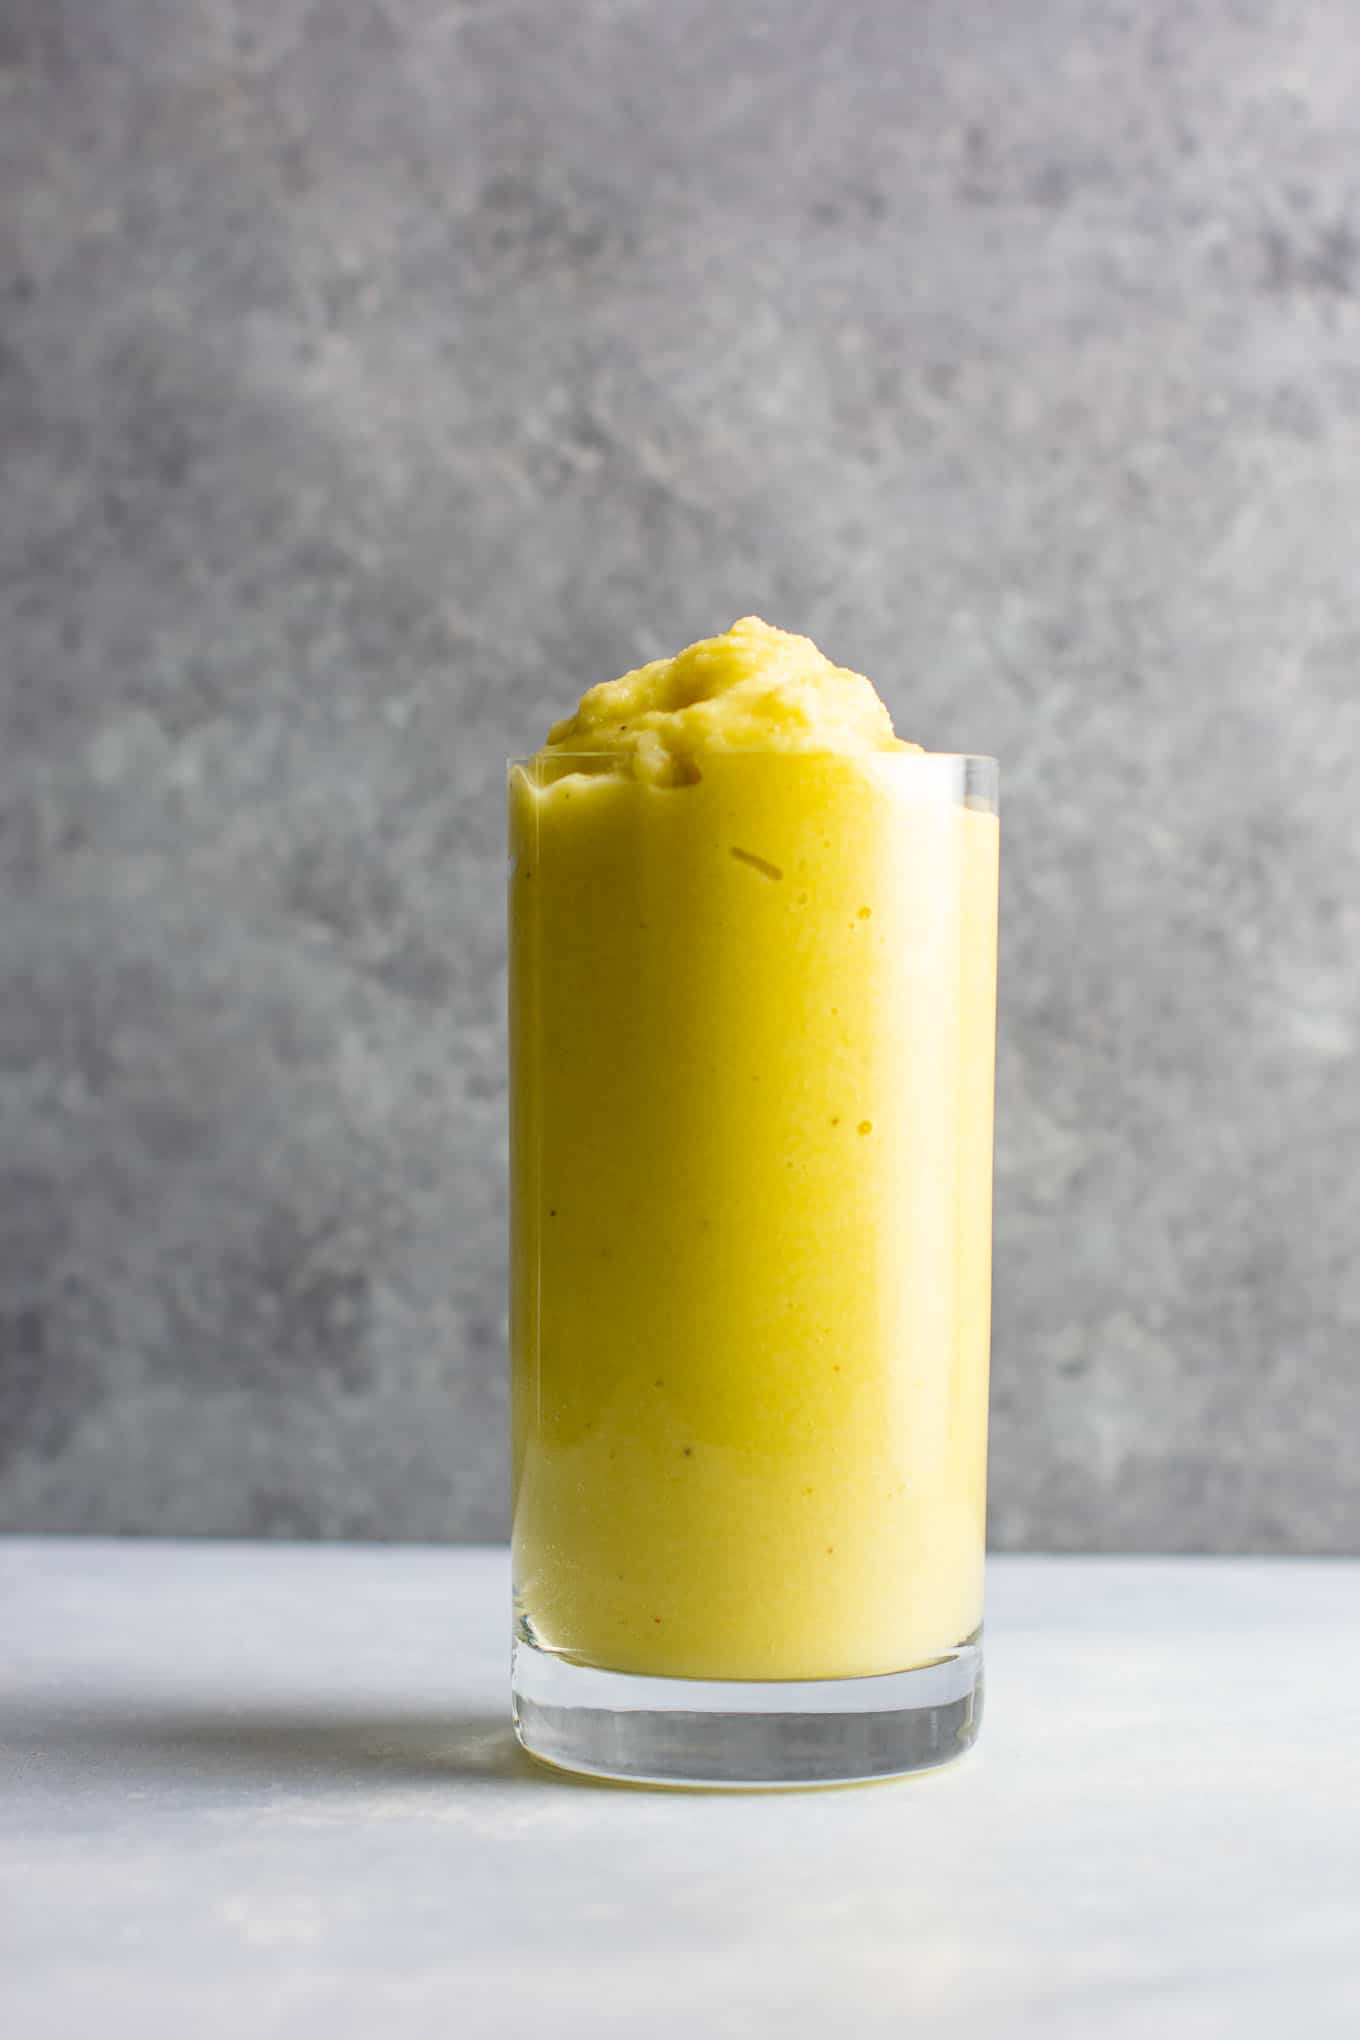 Pineapple detox smoothie with cucumbers, celery, lemon, peaches, ginger, and frozen bananas. A healthy smoothie recipe that tastes delicious! #detox #detoxsmoothie #healthysmoothie #vegan #healthyeating #healthyrecipe #smoothie #vegansmoothie